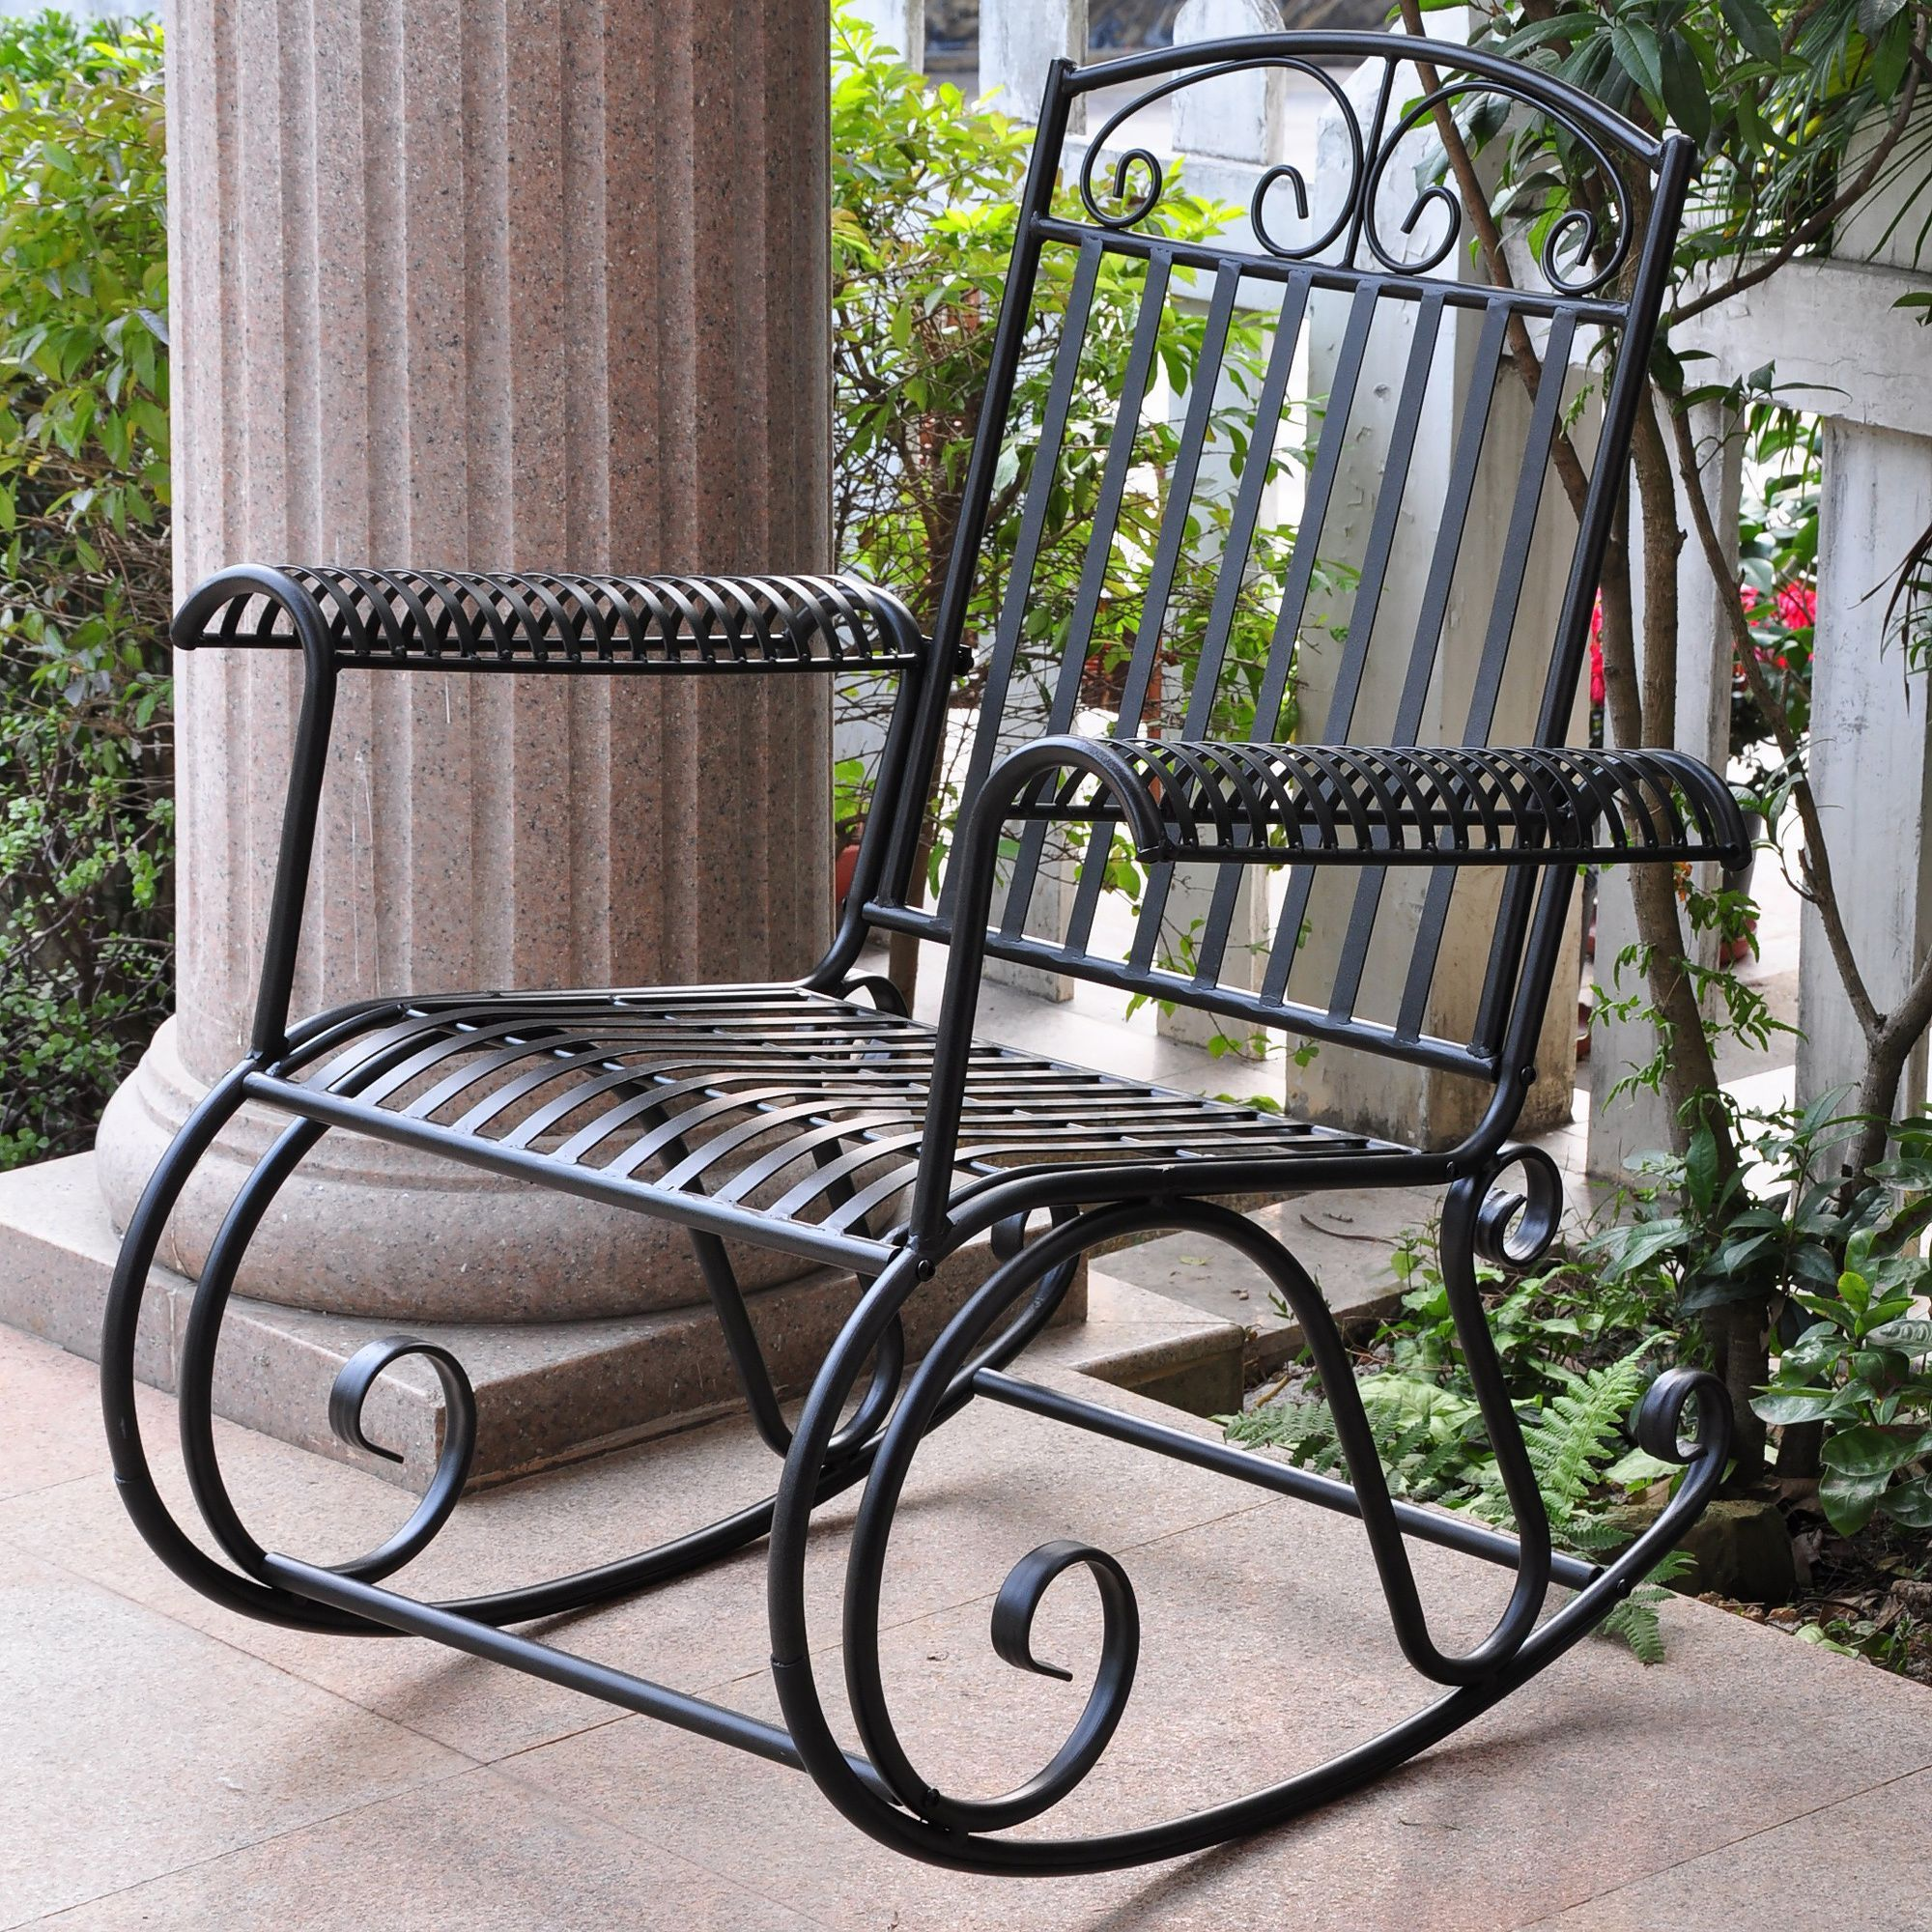 backyard perfect bees outdoor iron refresh furniture in pin and wrought patio makeover painted a